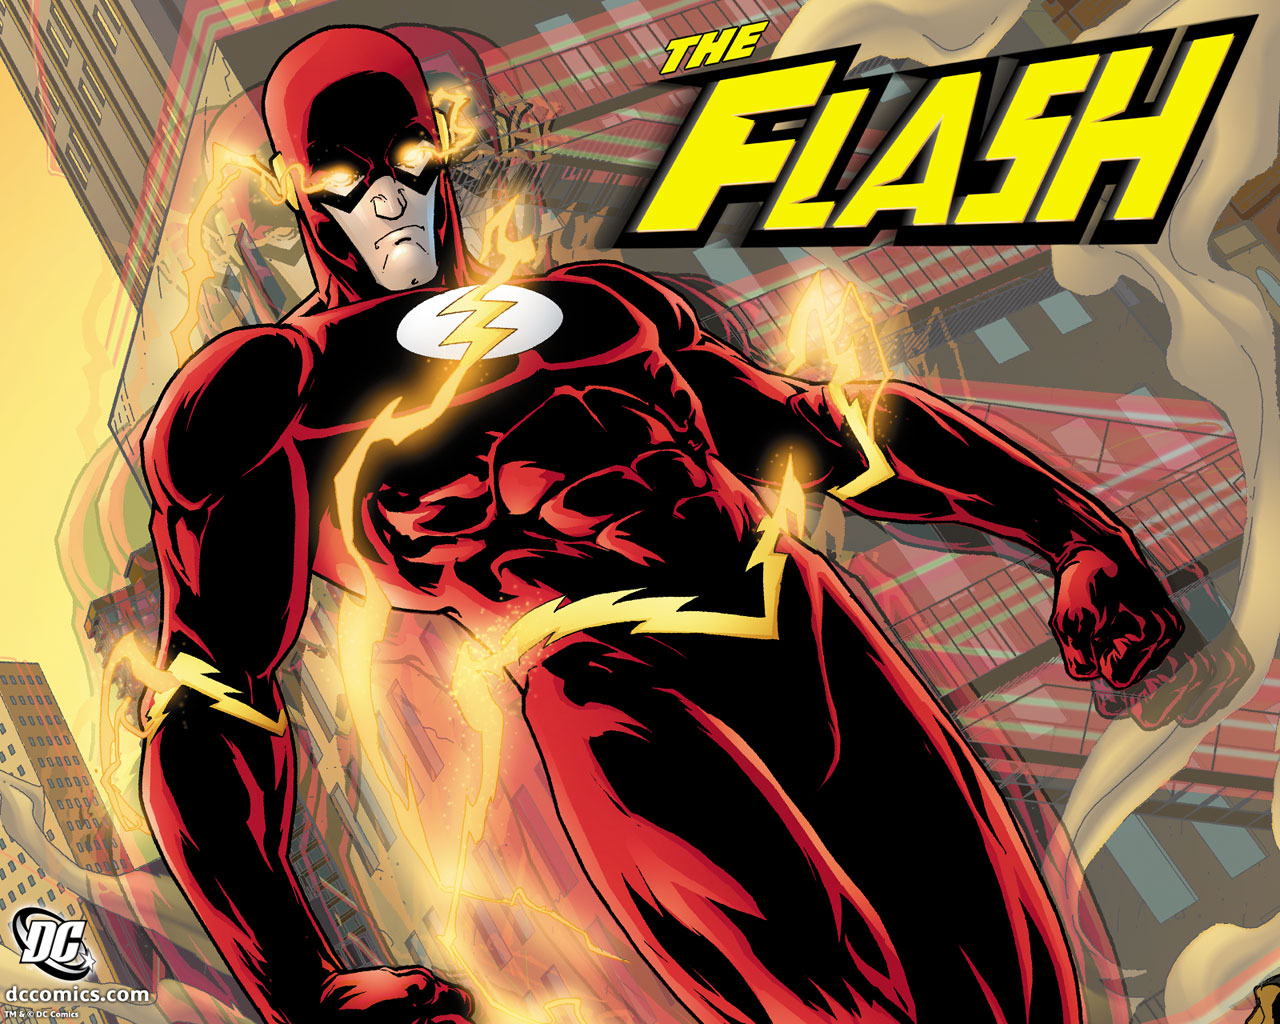 Comics Wallpapers DC Comics Flash Wallpapers Flash Comics Wallpaper 1280x1024